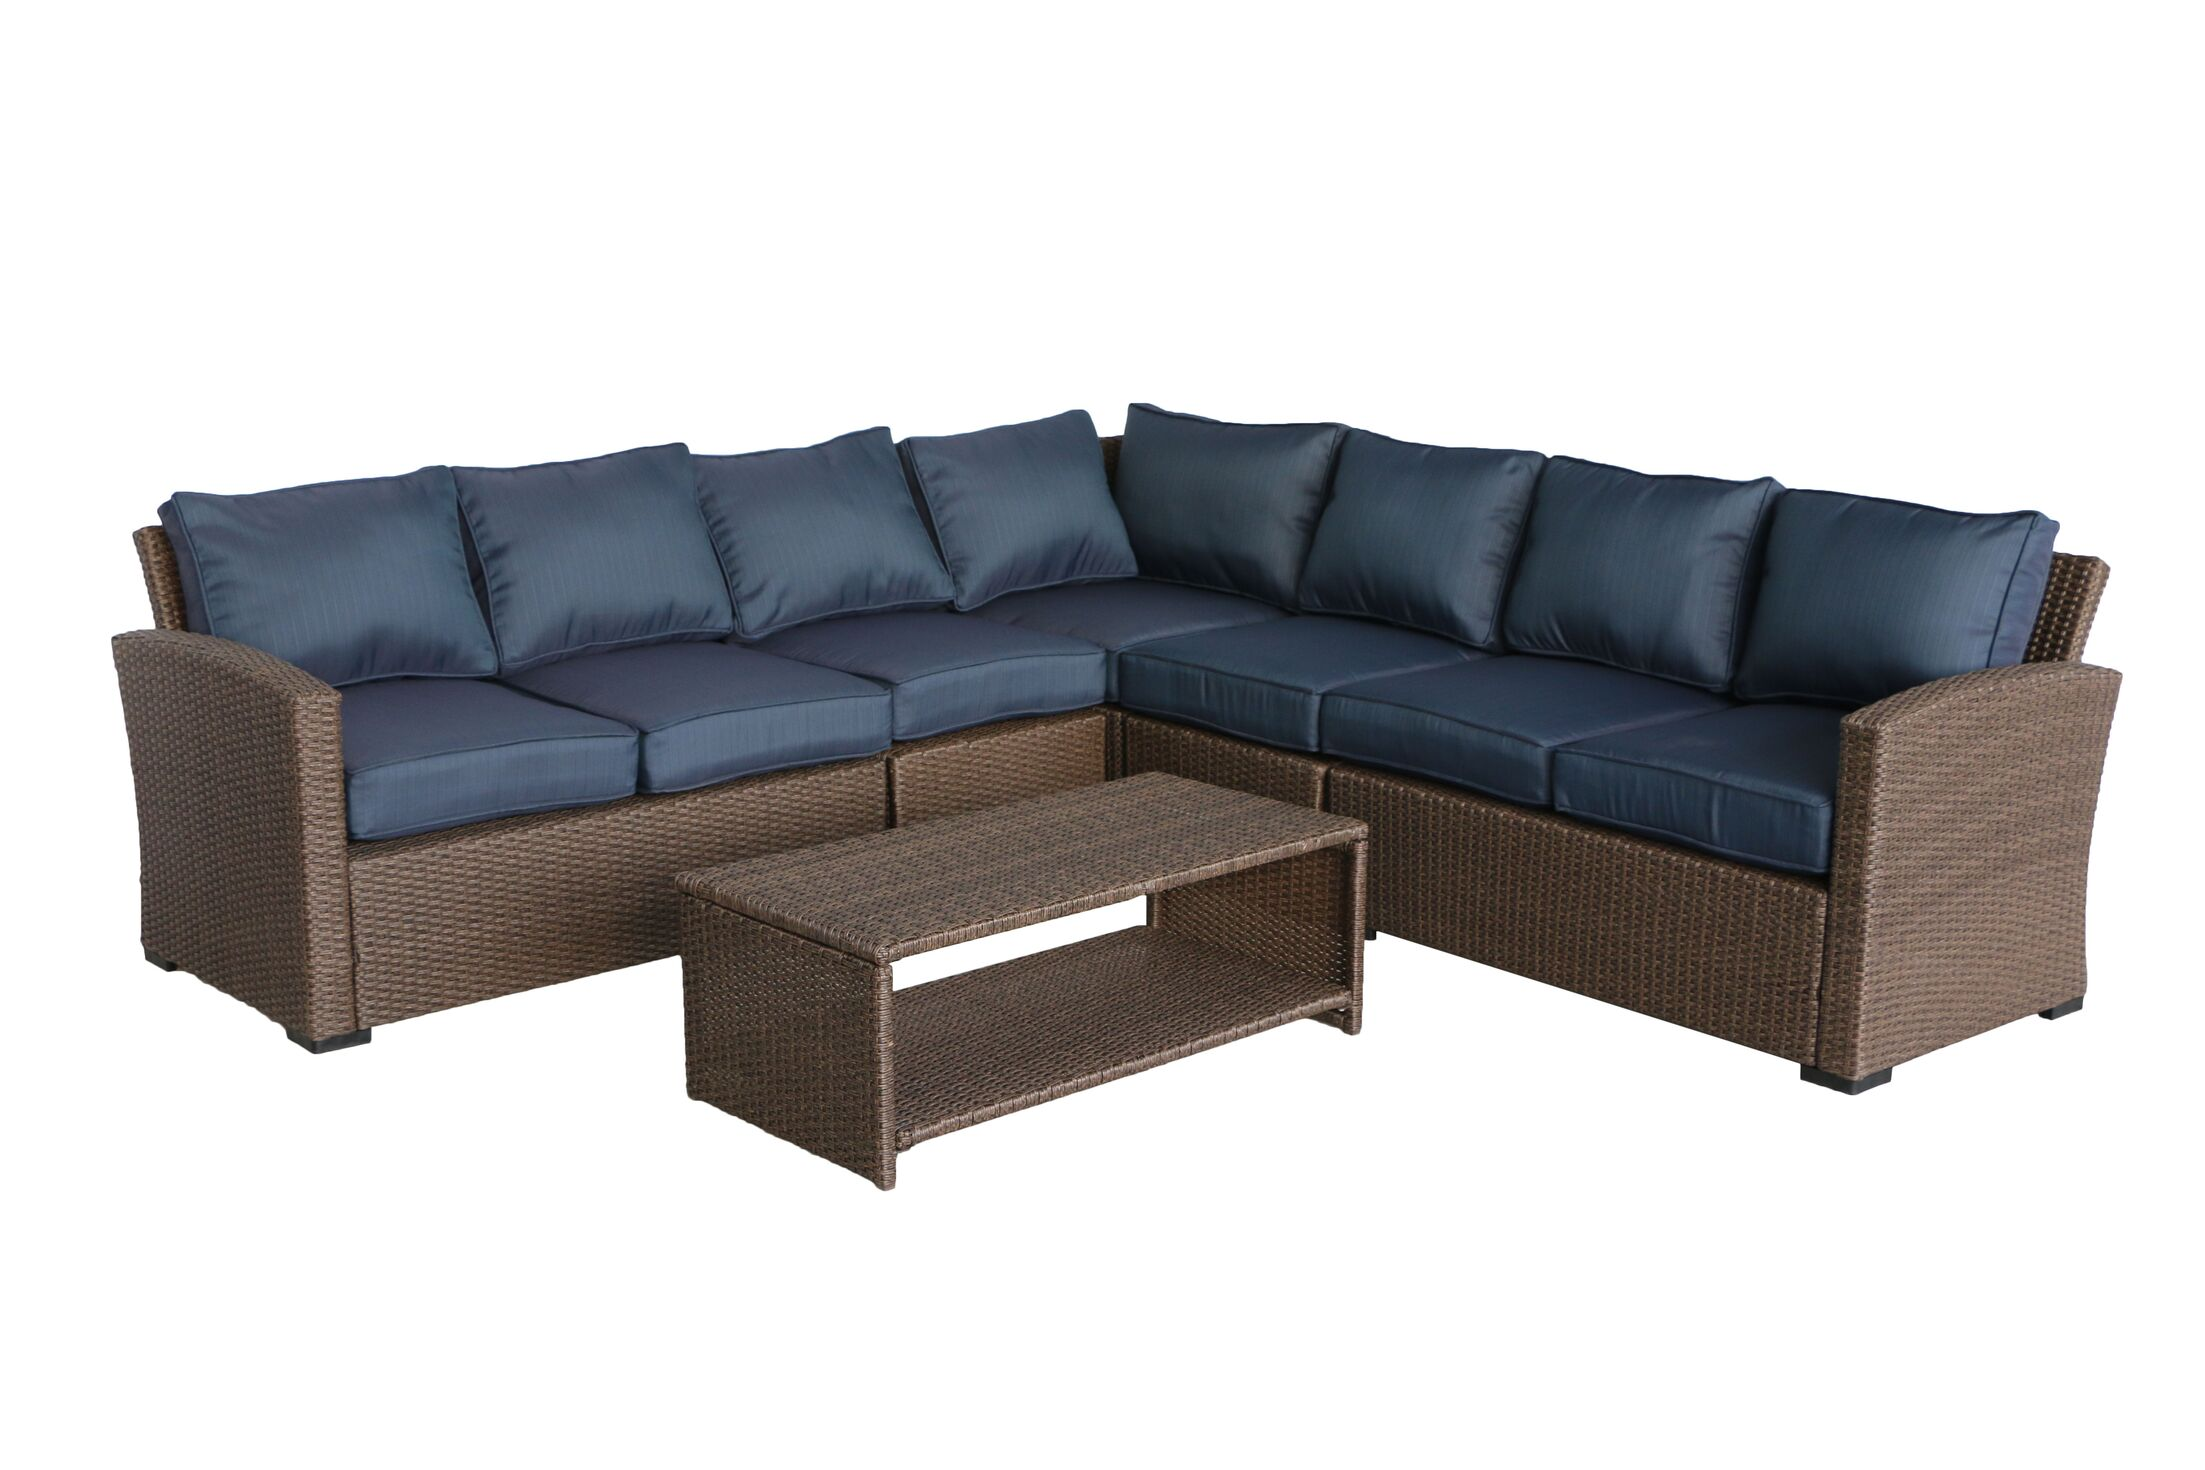 Behan 6 Piece Sectional Set with Cushions Cushion Color: Ribbed Navy